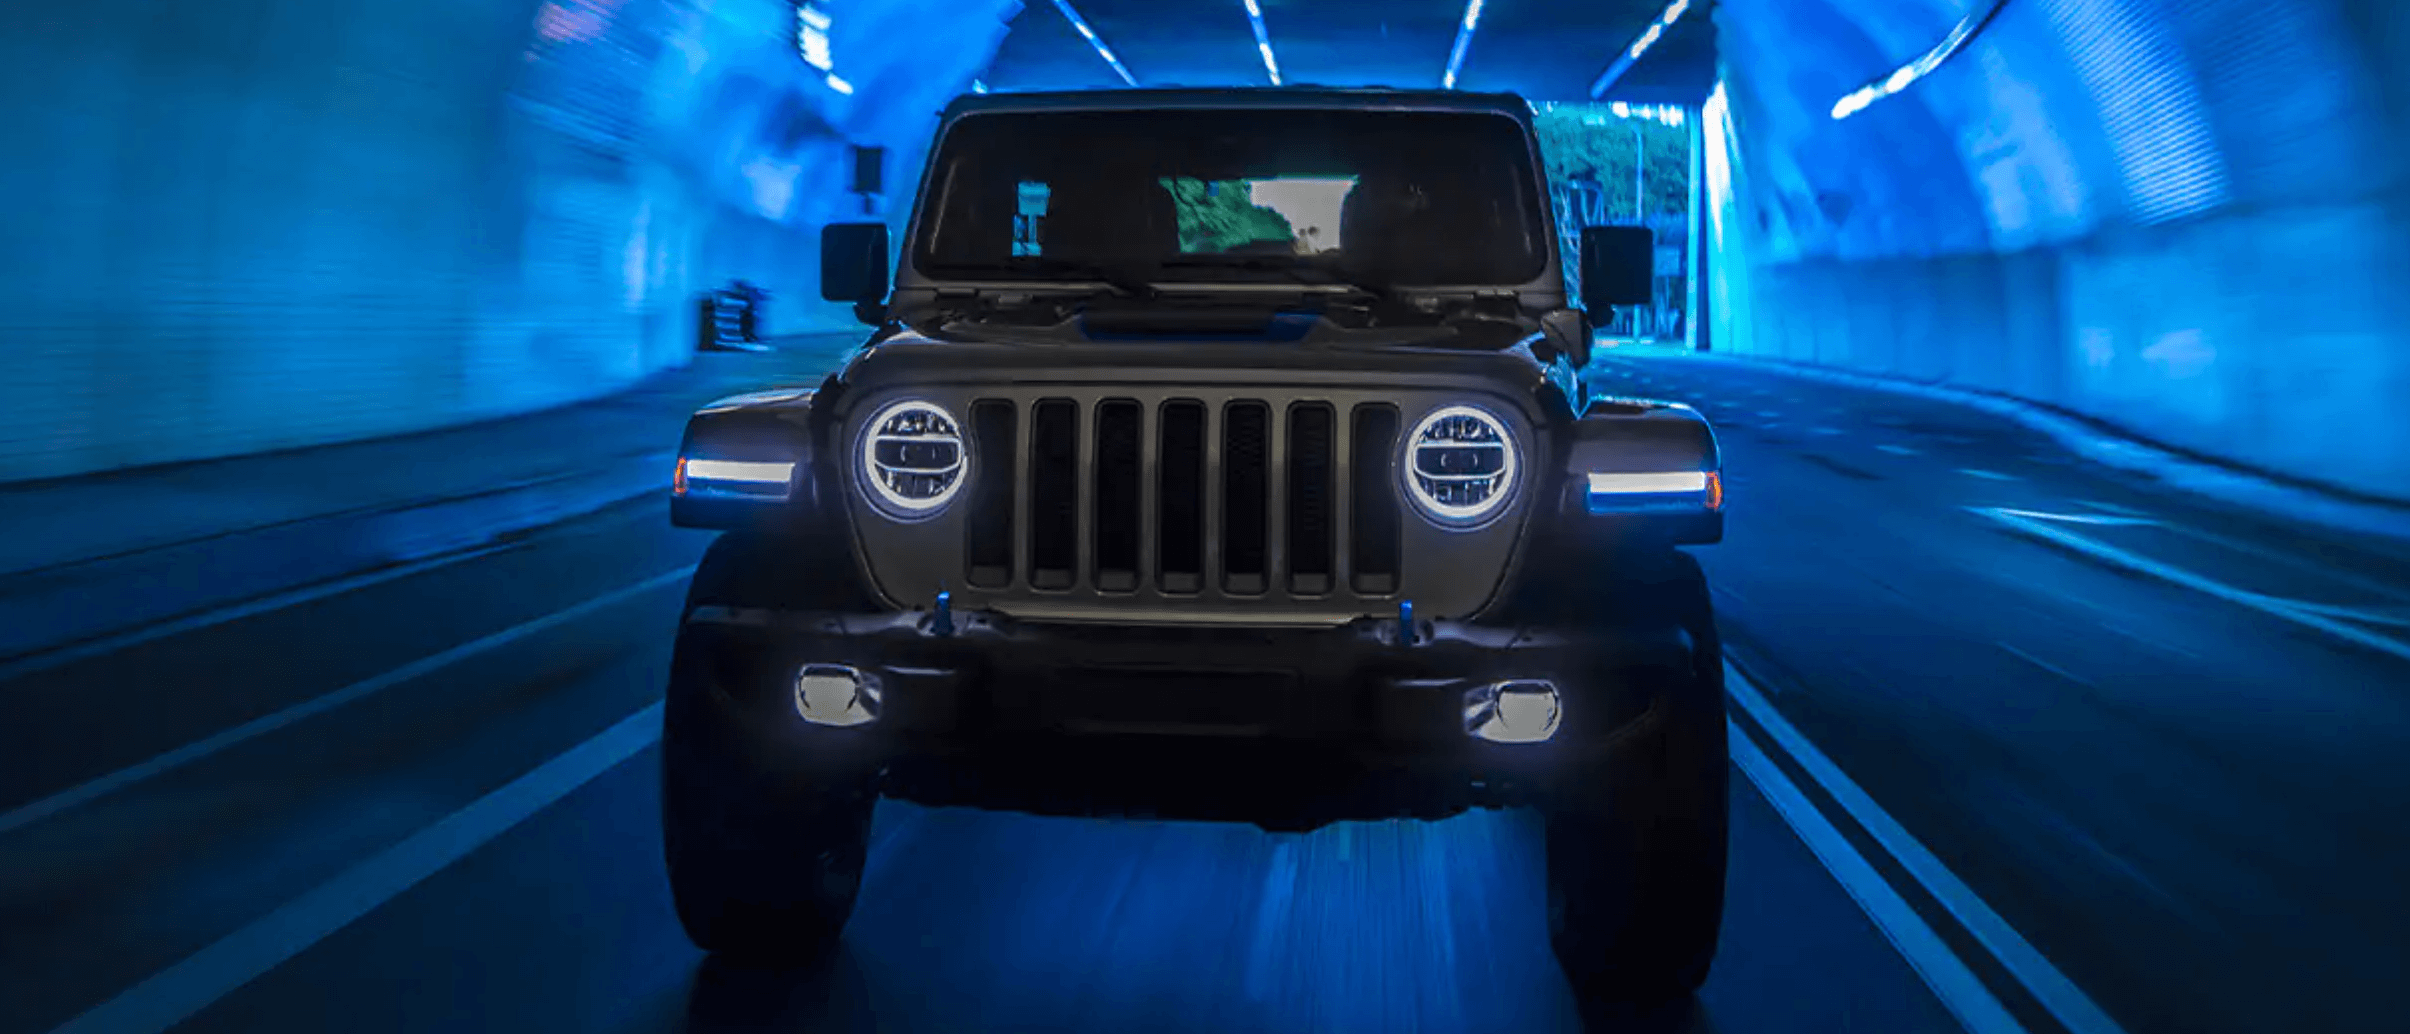 The new 2021 Jeep Wrangler 4xe driving through a tunnel